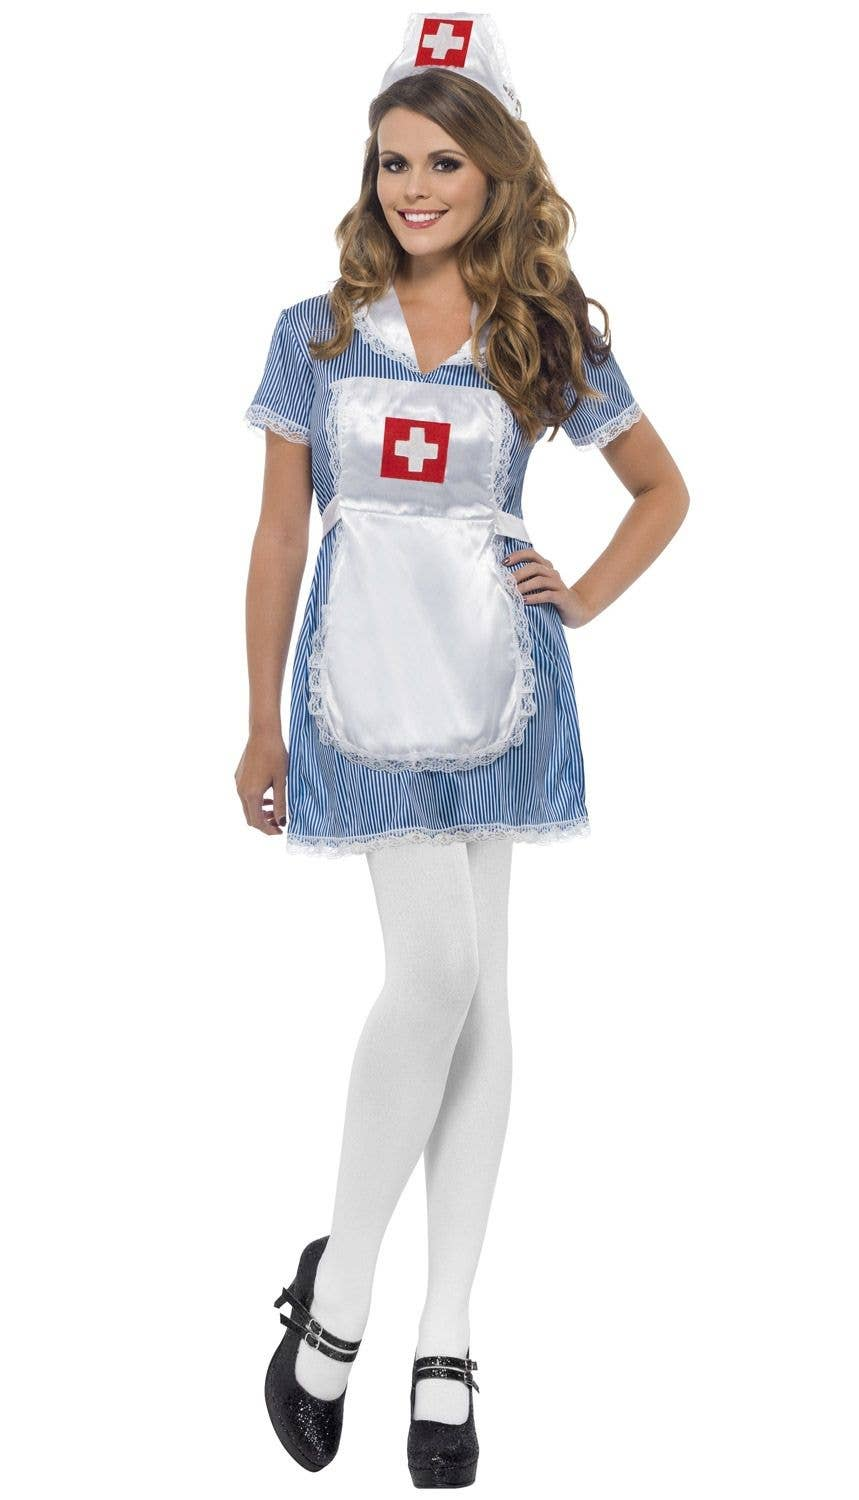 59c2c6b5dc5 Women s Blue and White Naughty Nurse Costume Front View